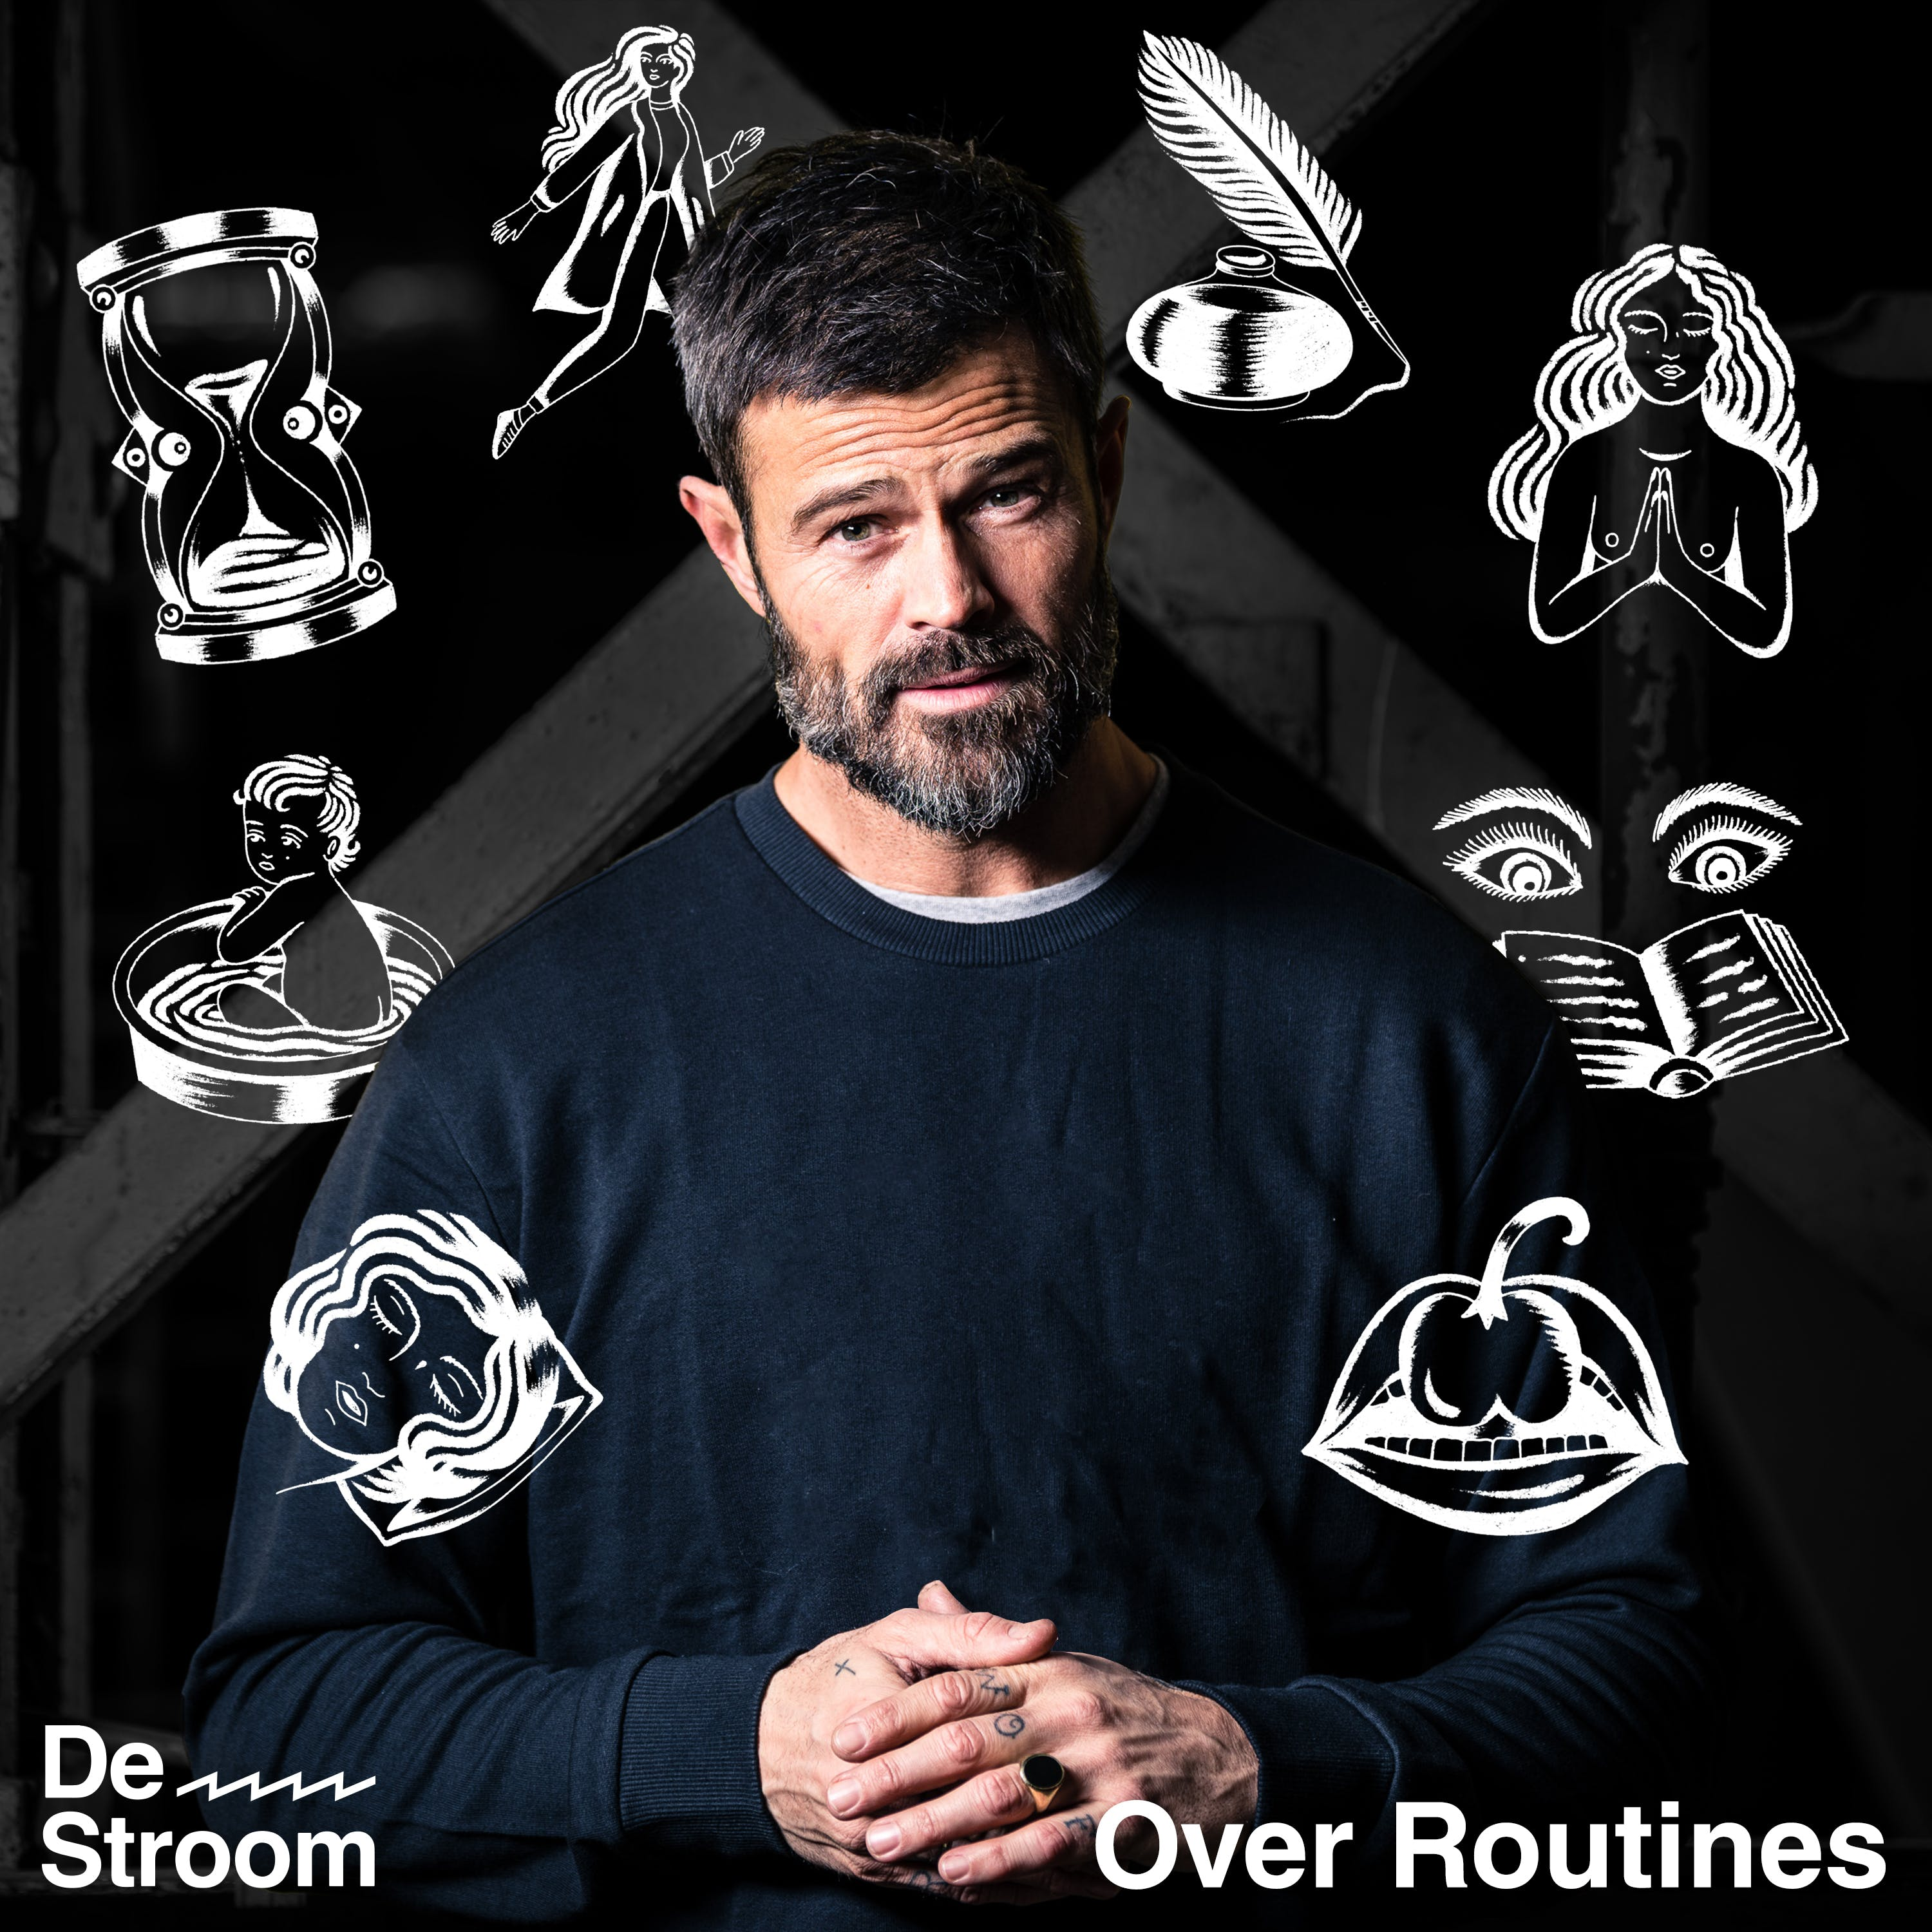 Over Routines: Mark Slats